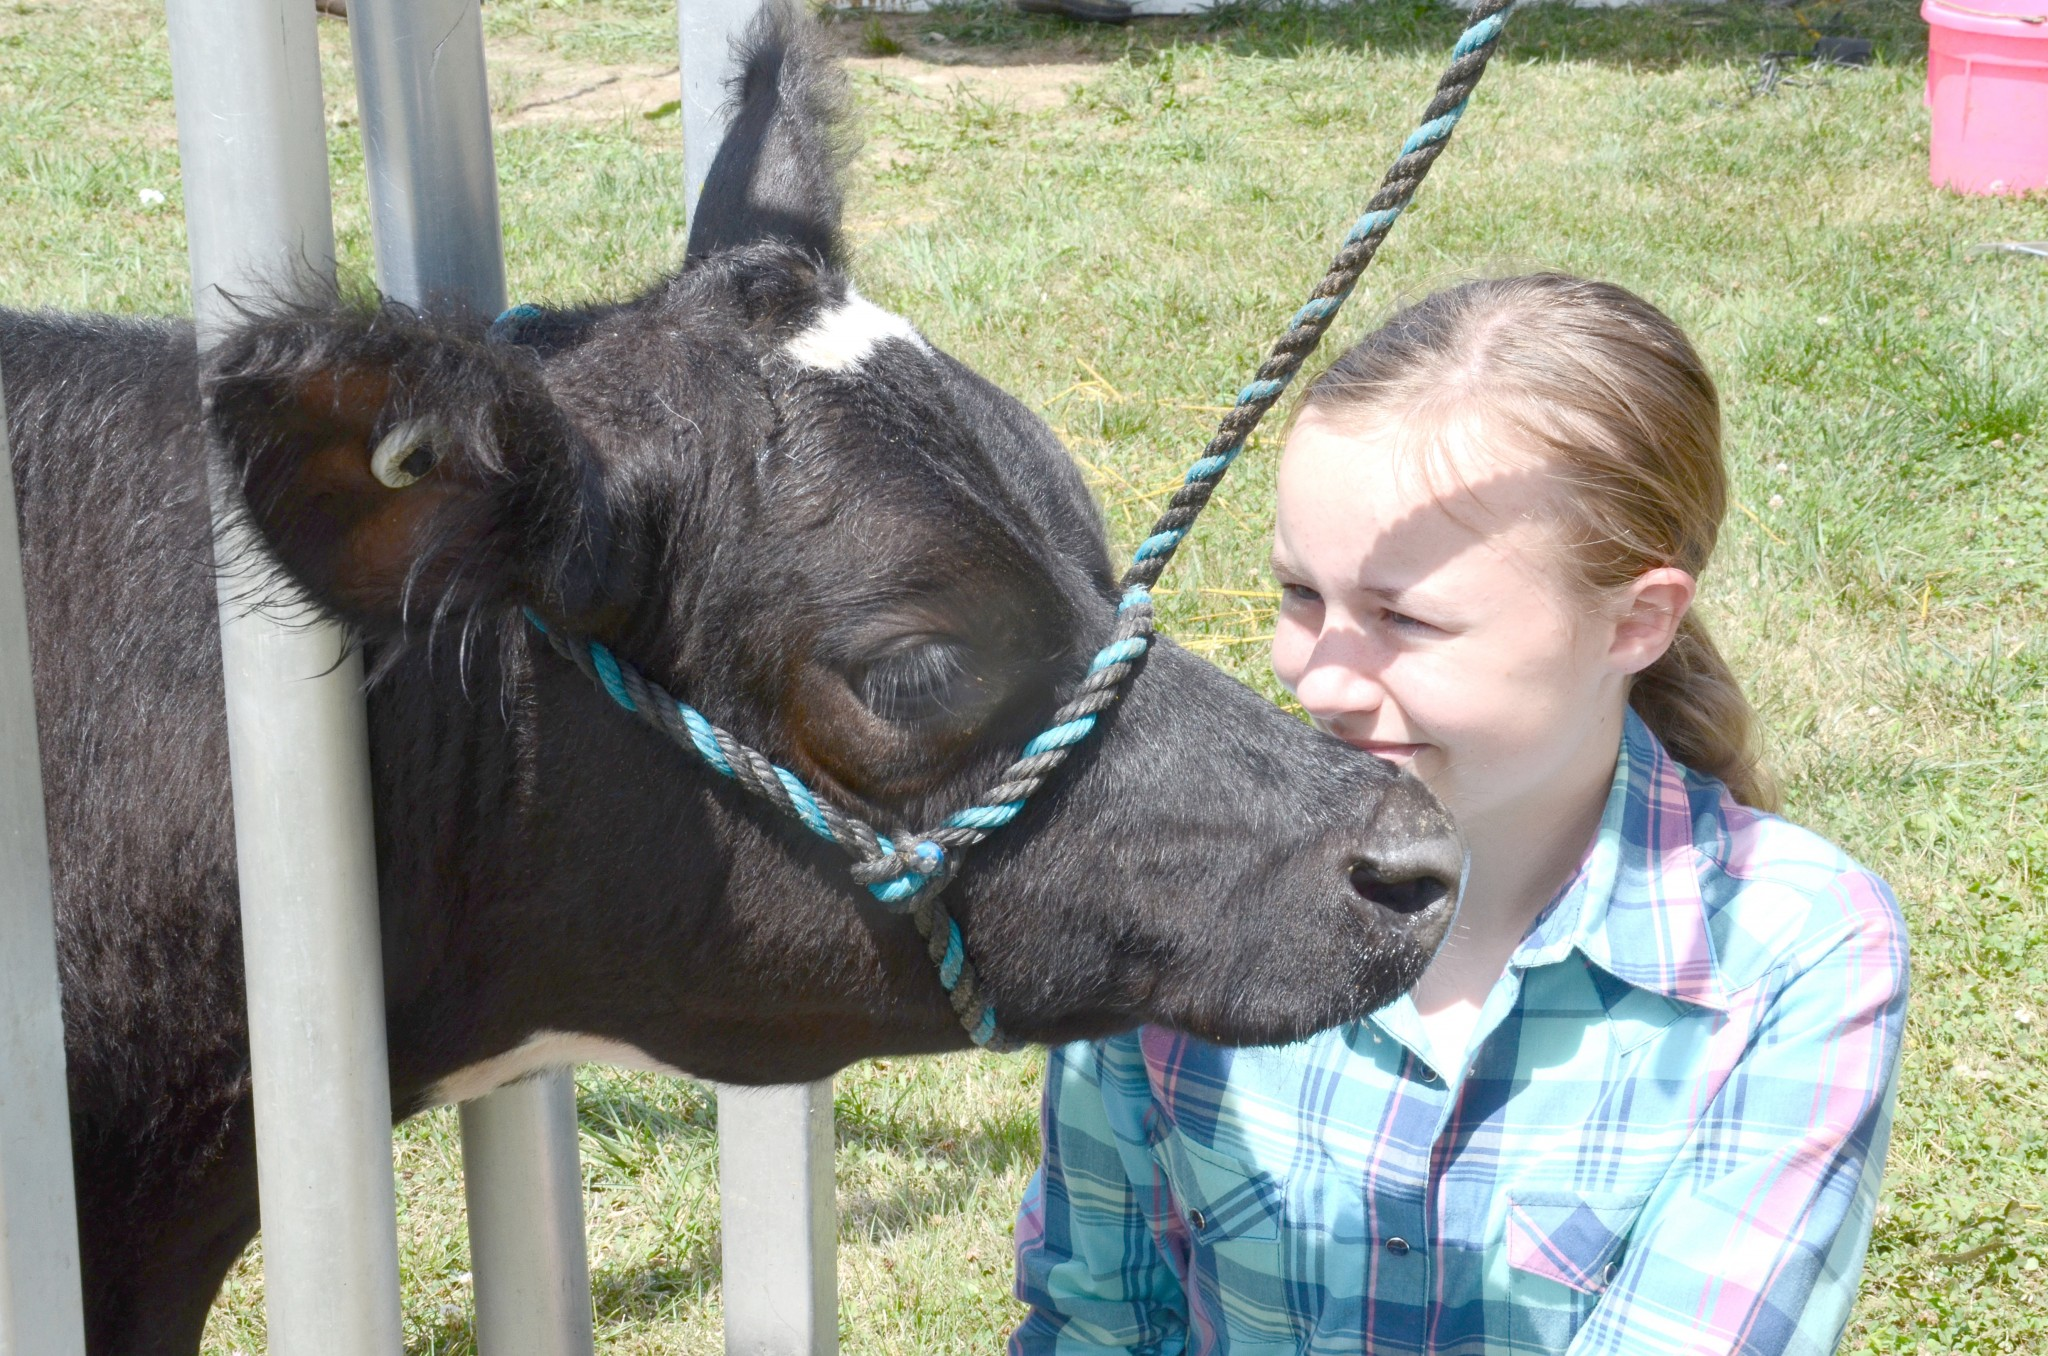 In addition to Junior Fair agricultural displays, judging and events, the Wood County Fair, set for Aug. 2-9, will include food, entertainment, amusement rides and more. (Photo by Ken